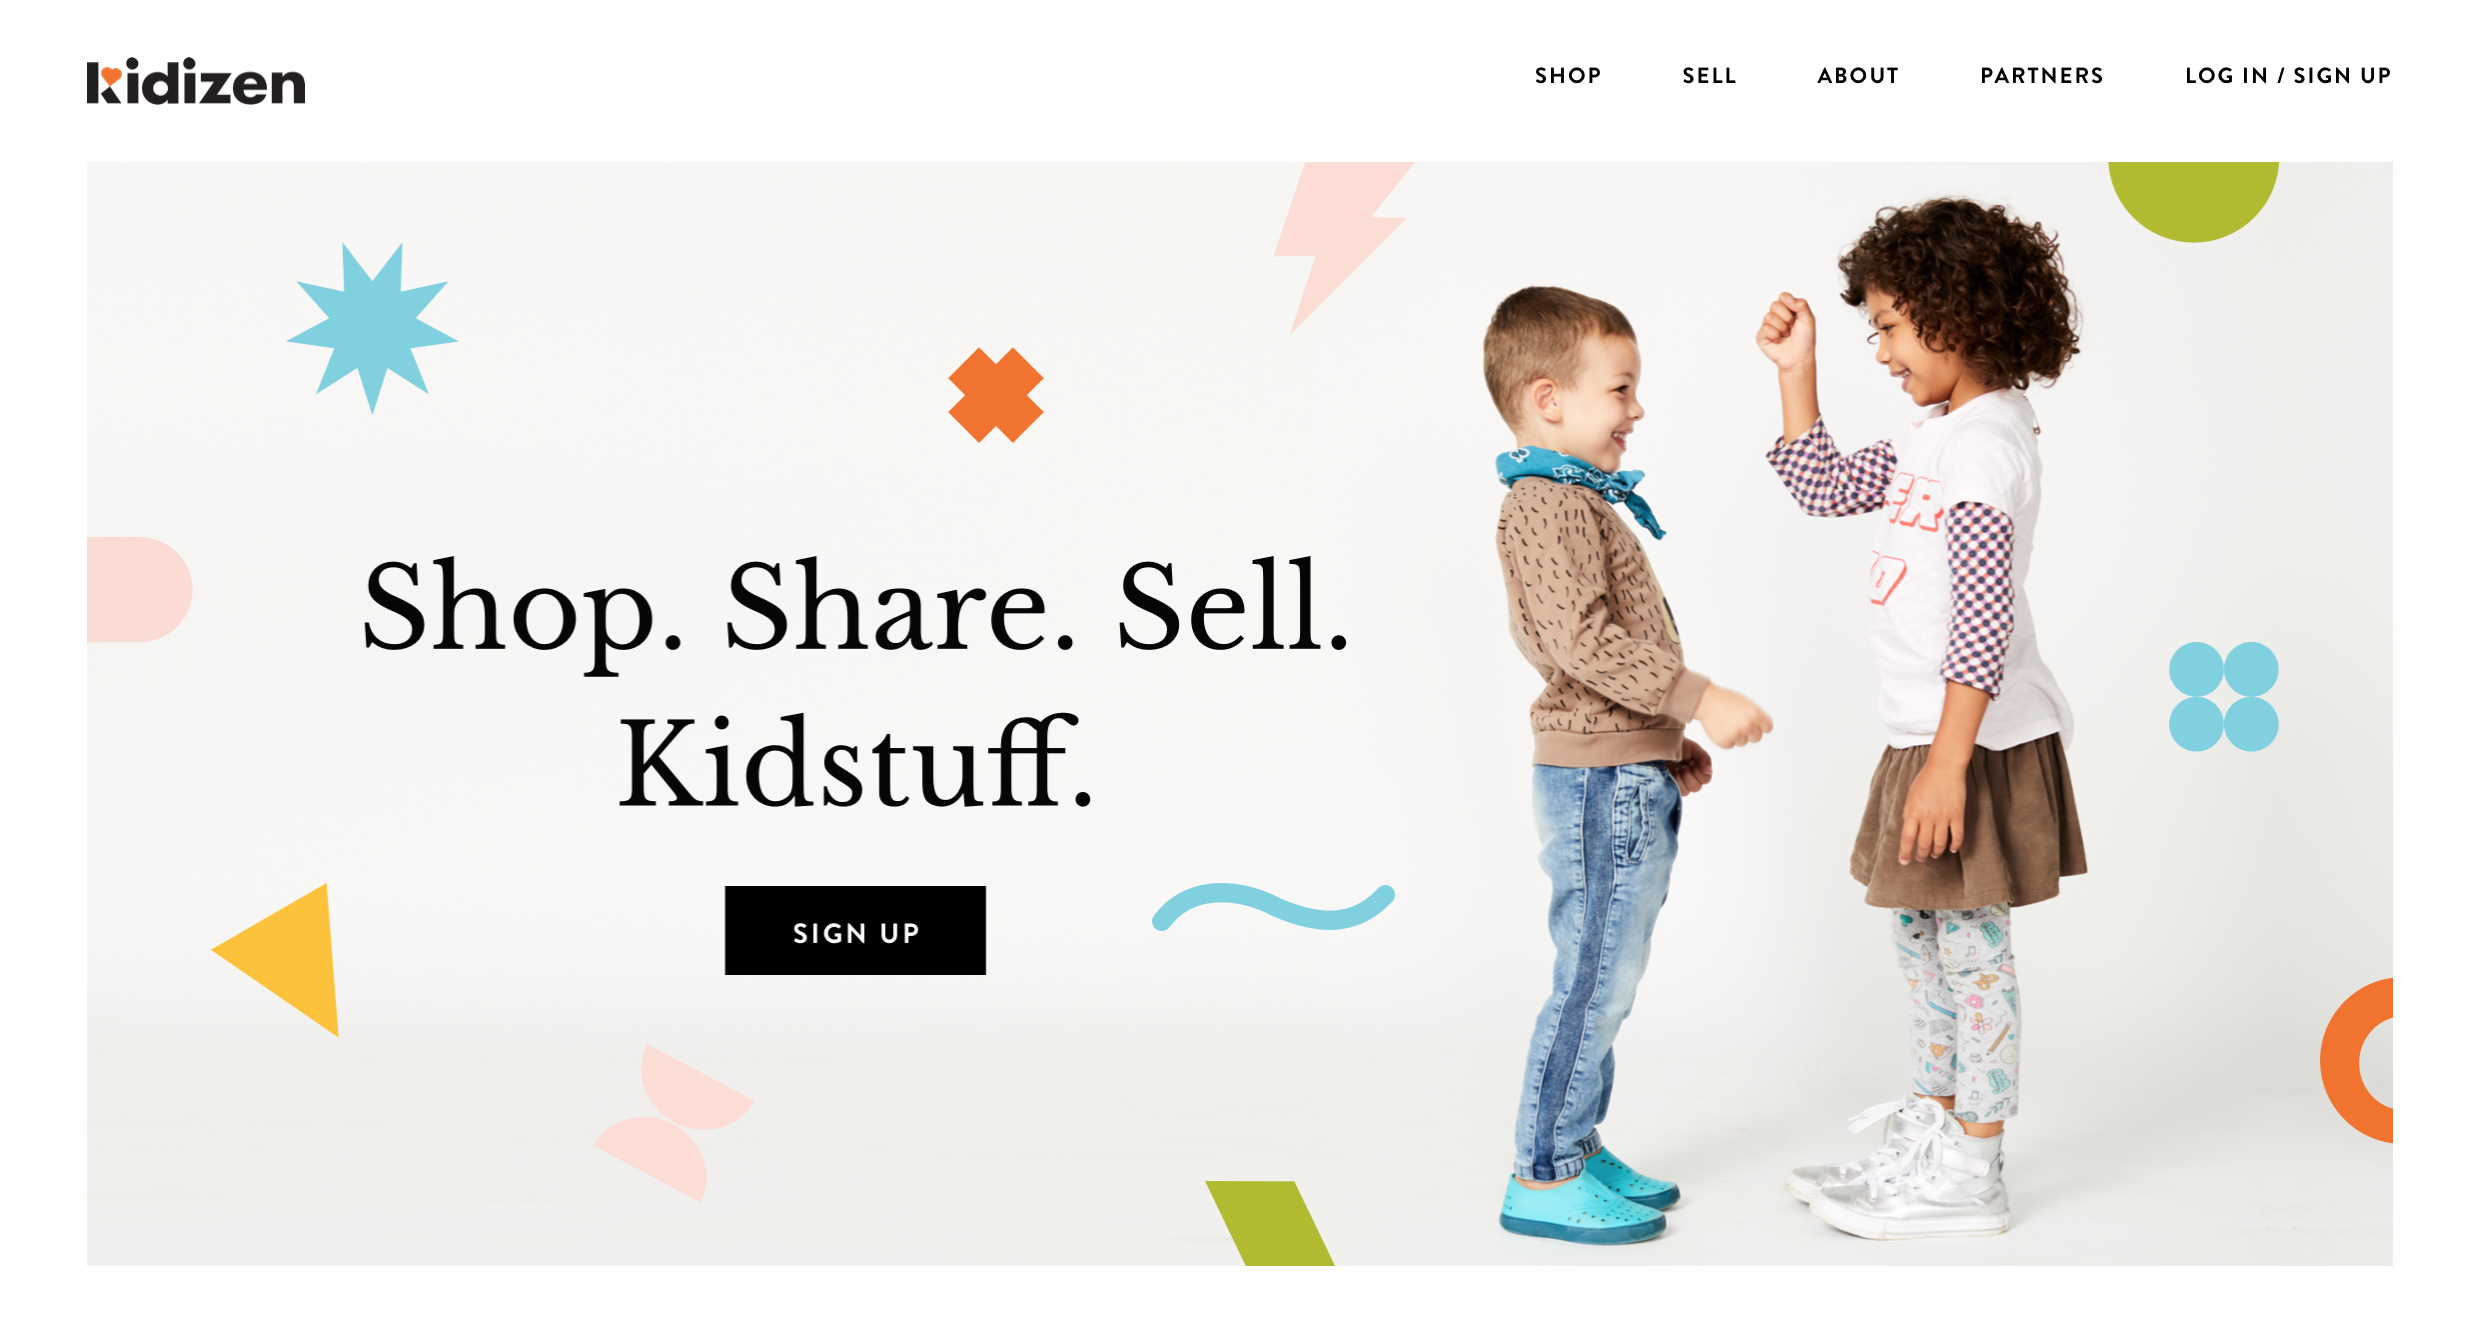 Kidizen Brand Home Page with Kids Photography by Watt Second Studios